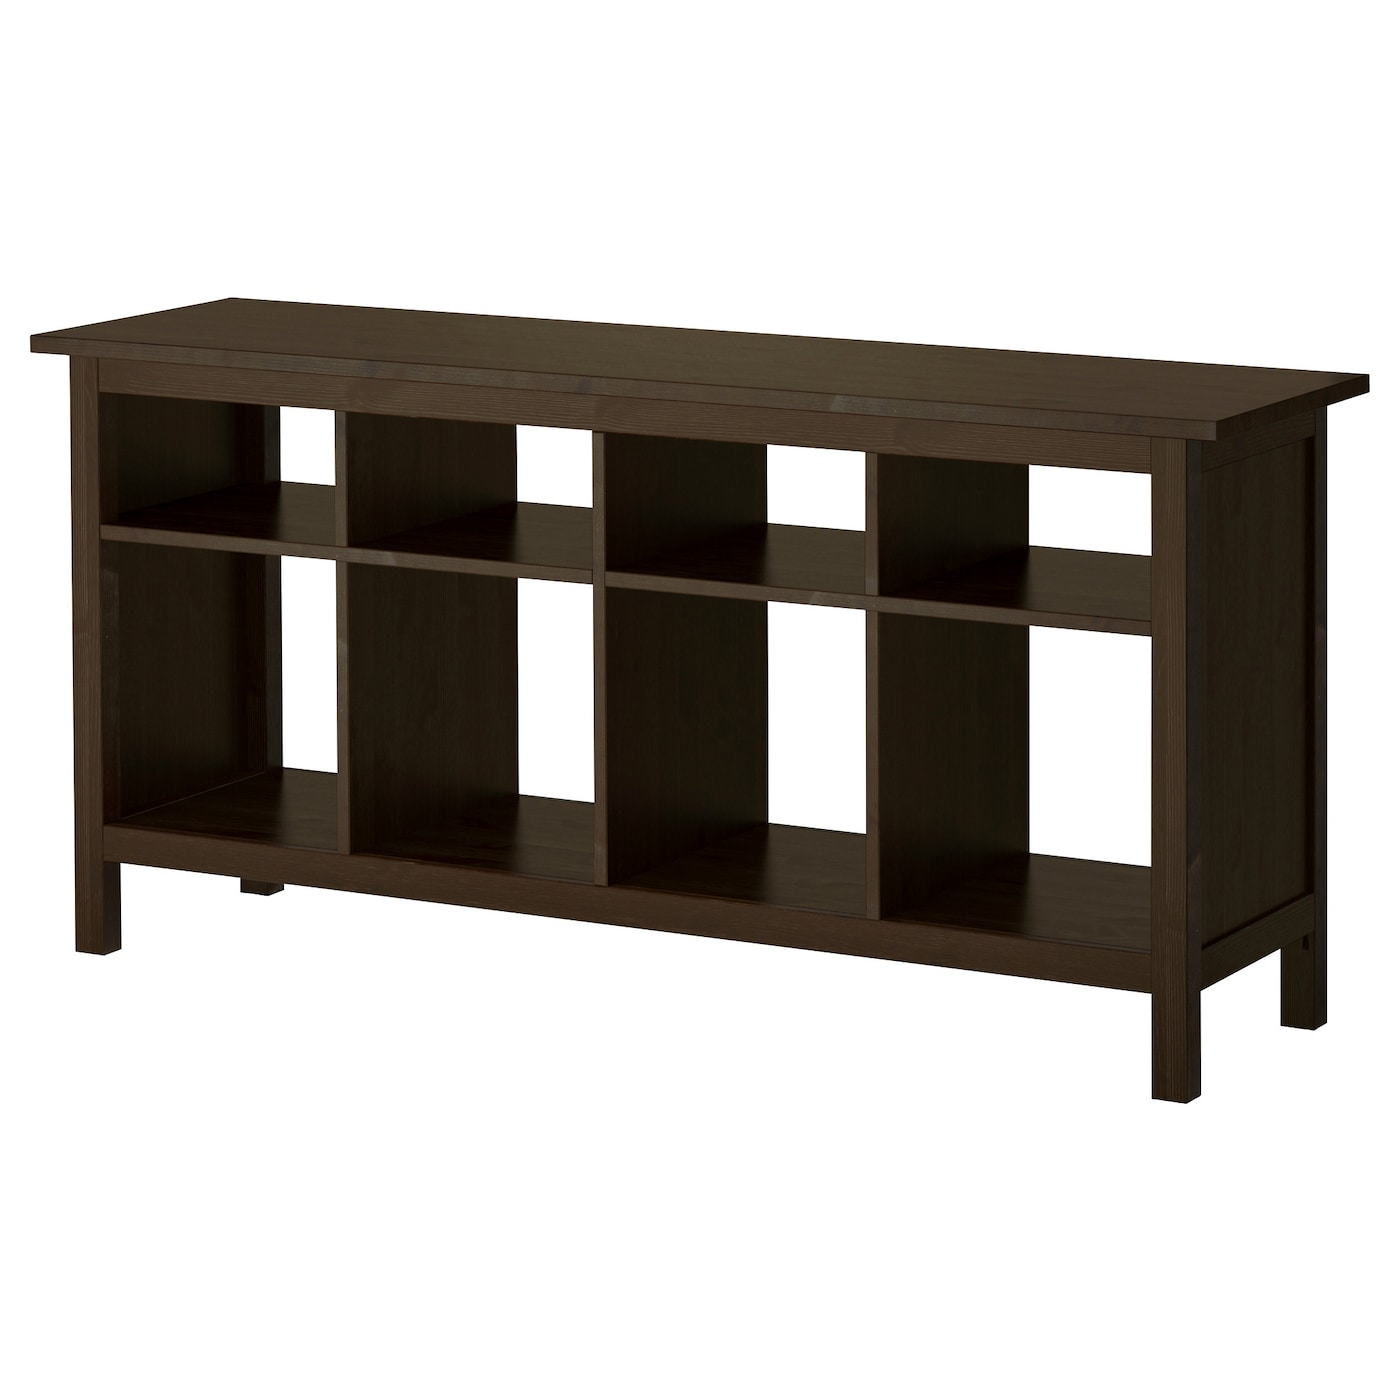 Hemnes console table black brown 157 x 40 cm ikea for Ikea comodino hemnes